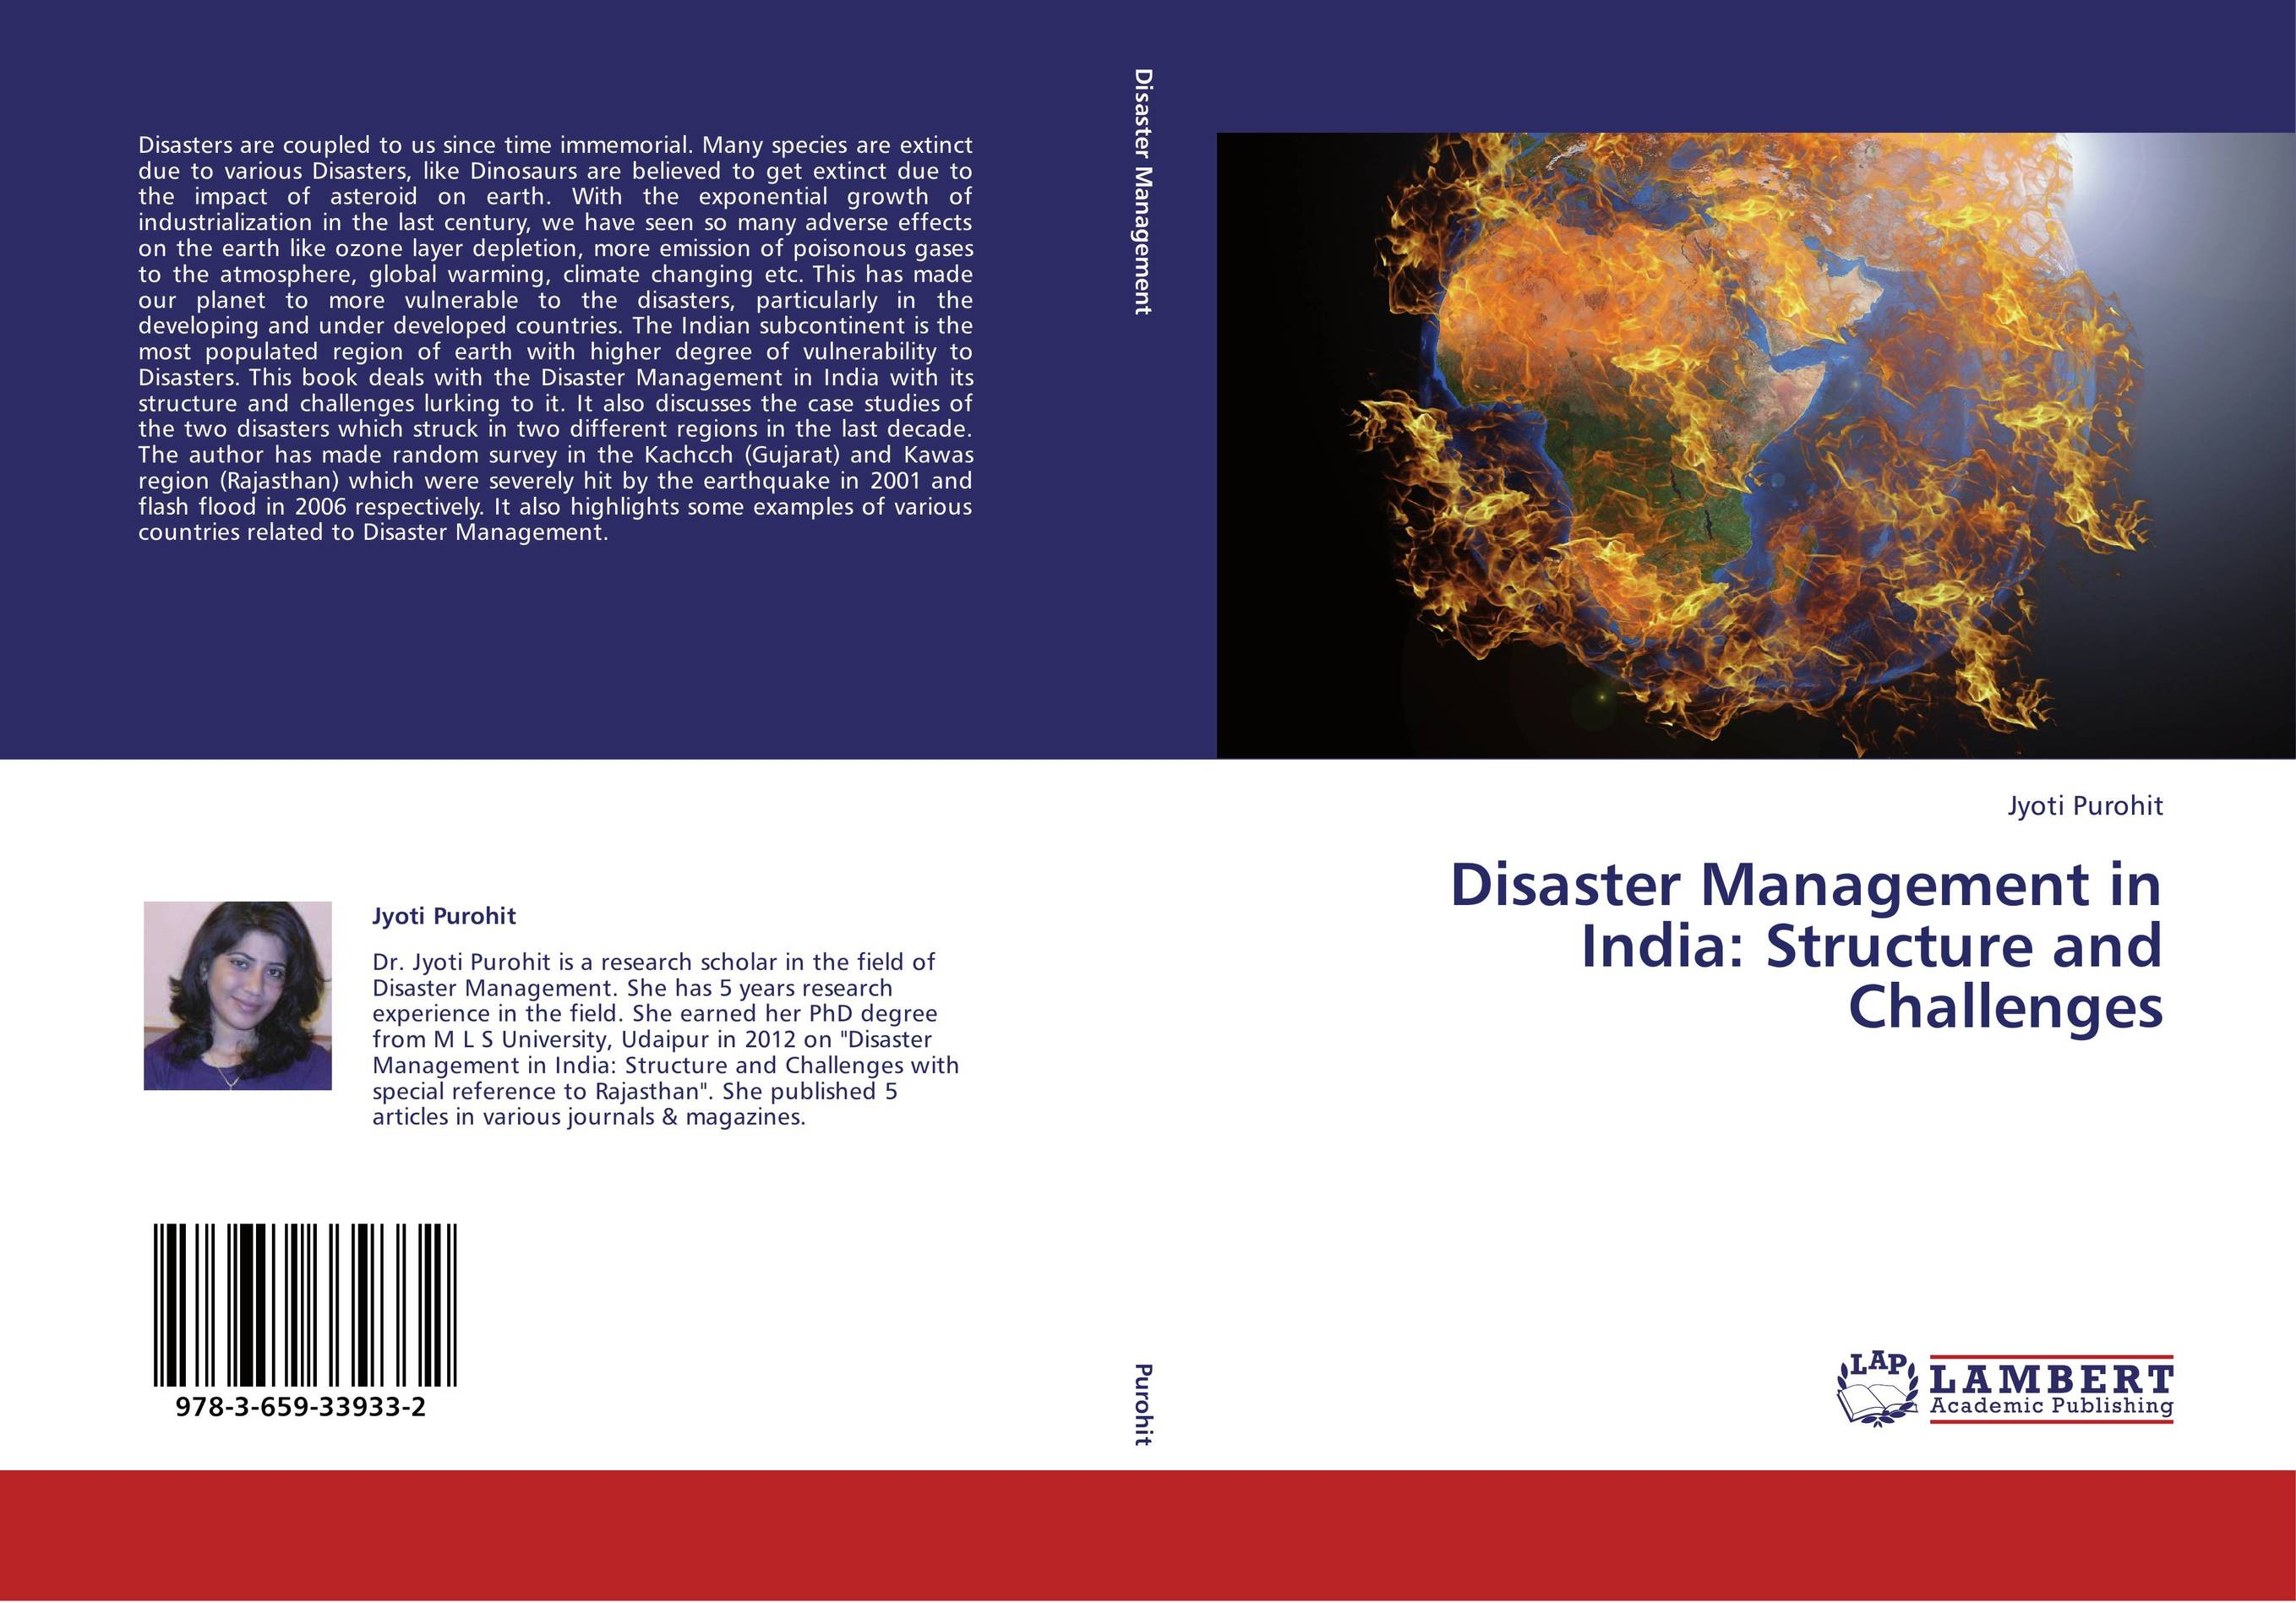 essays on disaster management in india August 2004 disaster management in india - a status report - government of india ministry of home affairs national disaster management division.